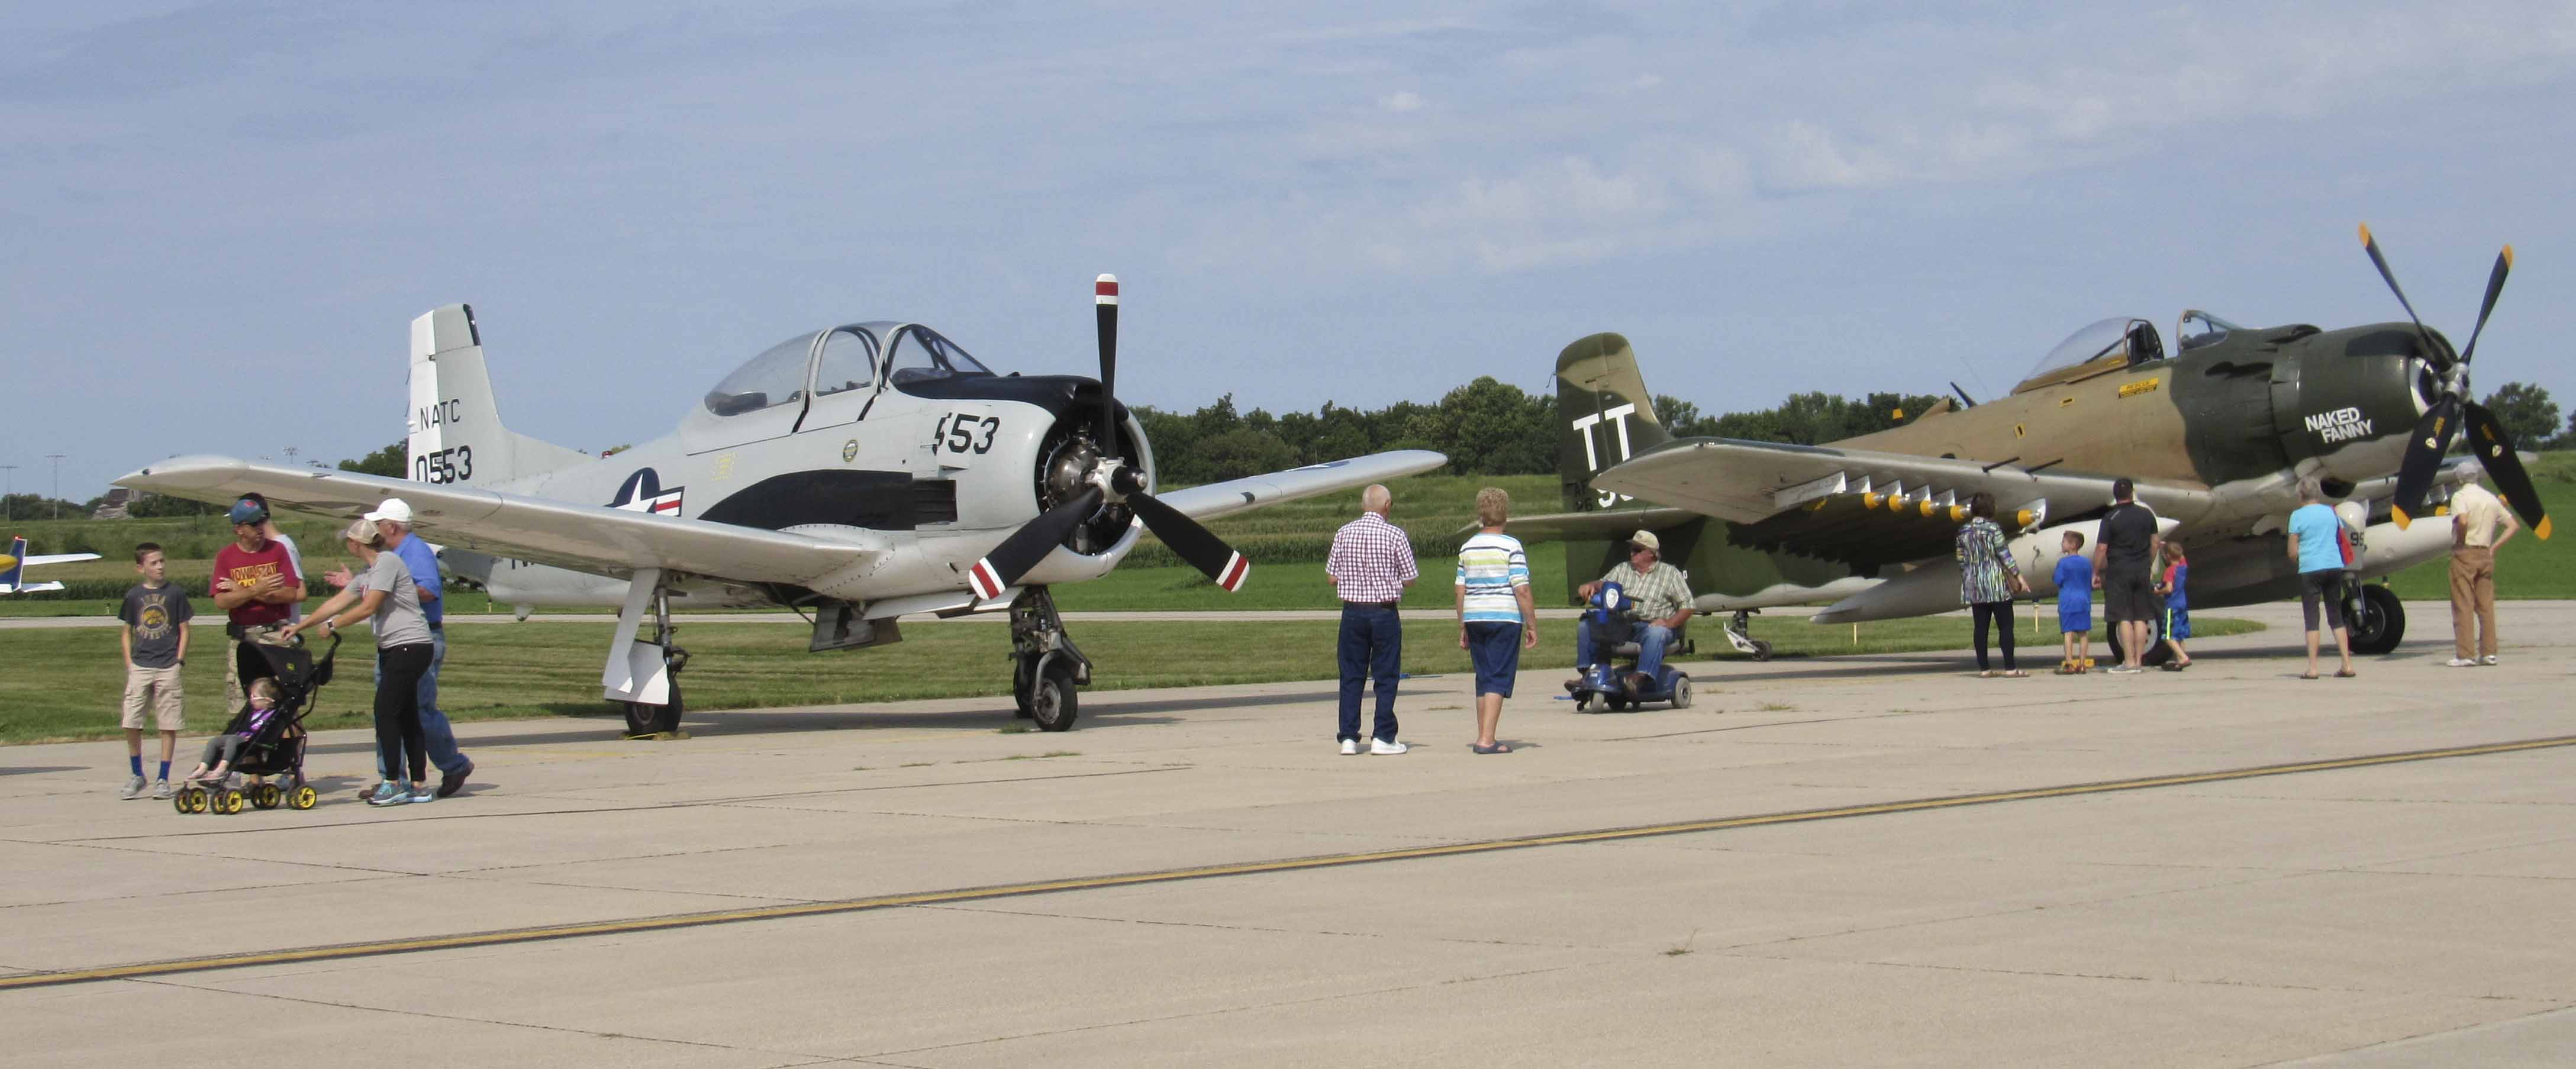 Visitors to the Aug. 6 Fly-in/Drive-in Breakfast at the Monticello Regional Airport enjoyed a close-up look at the warplanes on display on the runway, as well as several other private aircraft.